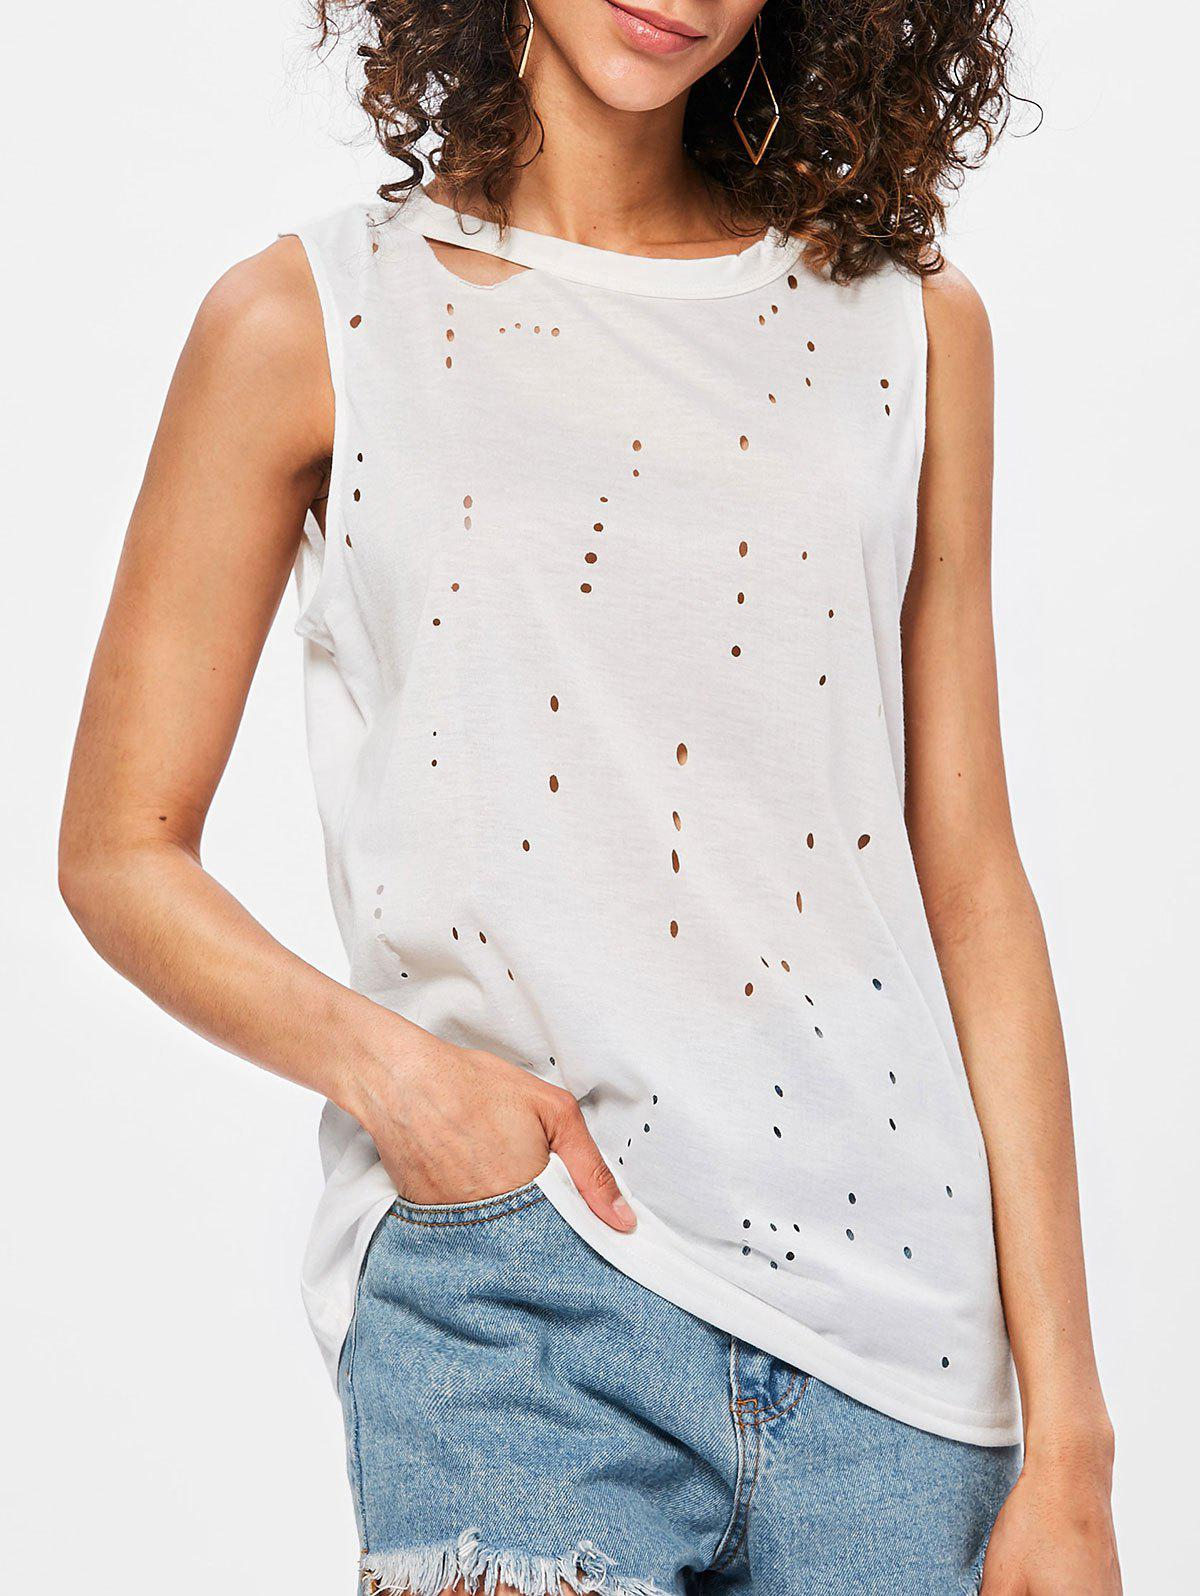 Unique Ripped Holes Back Cut Out Tank Top